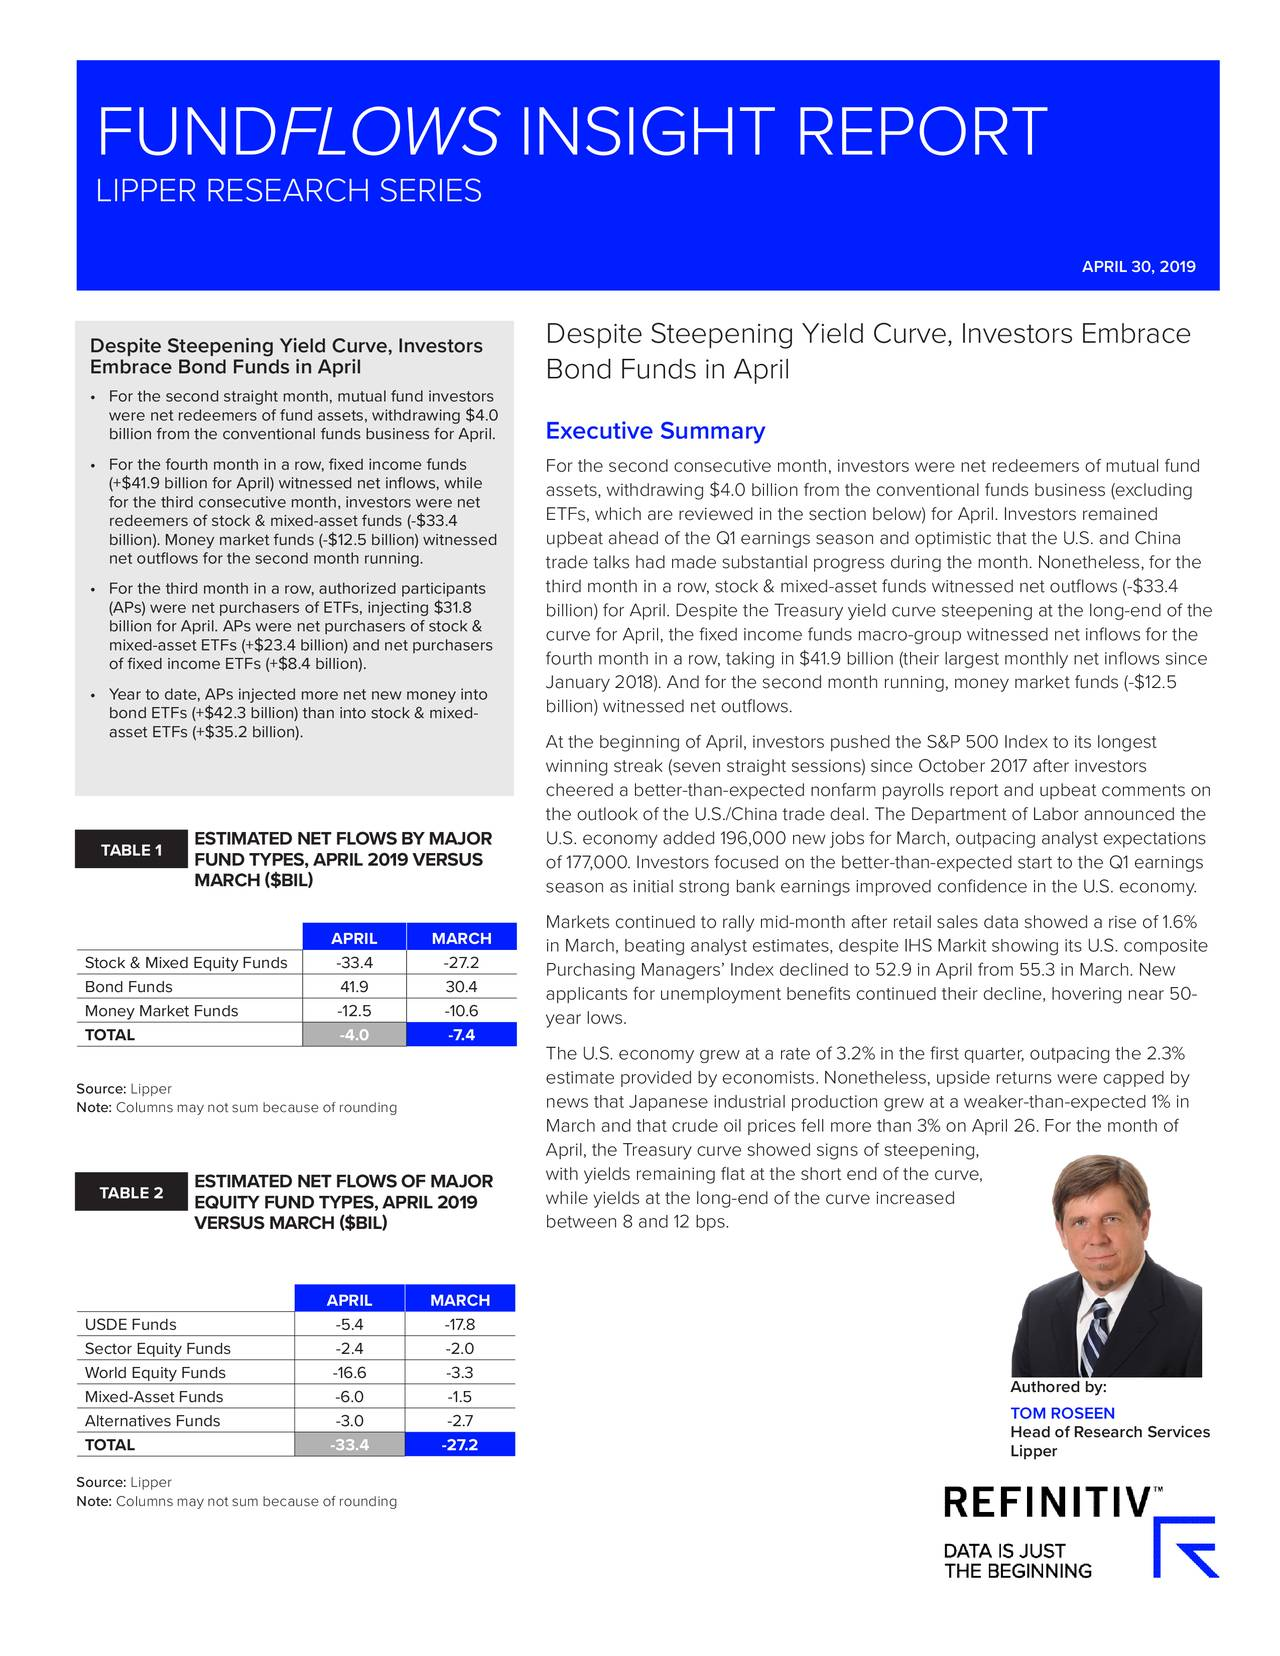 LIPPER RESEARCH SERIES APRIL 30, 2019 Despite Steepening Yield Curve, Investors Embrace Despite Steepening Yield Curve, Investors Embrace Bond Funds in April Bond Funds in April • For the second straight month, mutual fund investors were net redeemers of fund assets, withdrawing $4.0 billion from the conventional funds business for April.ecutive Summary • For the fourth month in a row, fixed income funds For the second consecutive month, investors were net redeemers of mutual fund (+$41.9 billion for April) witnessed net inflows, while for the third consecutive month, investors were net assets, withdrawing $4.0 billion from the conventional funds business (excluding redeemers of stock & mixed-asset funds (-$33.4 ETFs, which are reviewed in the section below) for April. Investors r▯ ined billion). Money market funds (-$12.5 billion) witnessedbeat ahead of the Q1 earnings season and optimistic that the U.S. and China net outflows for the second month running. trade talks had made substantial progress during the month. Nonetheless, for the • For the third month in a row, authorized participantsthird month in a row, stock & mixed-asset funds witnessed net outflows (-$33.4 (APs) were net purchasers of ETFs, injecting $31.8 billion) for April. Despite the Treasury yield curve steepening at the long-end of the billion for April. APs were net purchasers of stock &curve for April, the fixed income funds macro-group witnessed net inflows for the mixed-asset ETFs (+$23.4 billion) and net purchasers of fixed income ETFs (+$8.4 billion). fourth month in a row, taking in $41.9 billion (their largest monthly net inflows since January 2018). And for the second month running, money market funds (-$12.5 • Year to date, APs injected more net new money into billion) witnessed net outflows. bond ETFs (+$42.3 billion) than into stock & mixed- asset ETFs (+$35.2 billion). At the beginning of April, investors pushed the S&P 500 Index to its longest winning streak (seven straight sessions) 